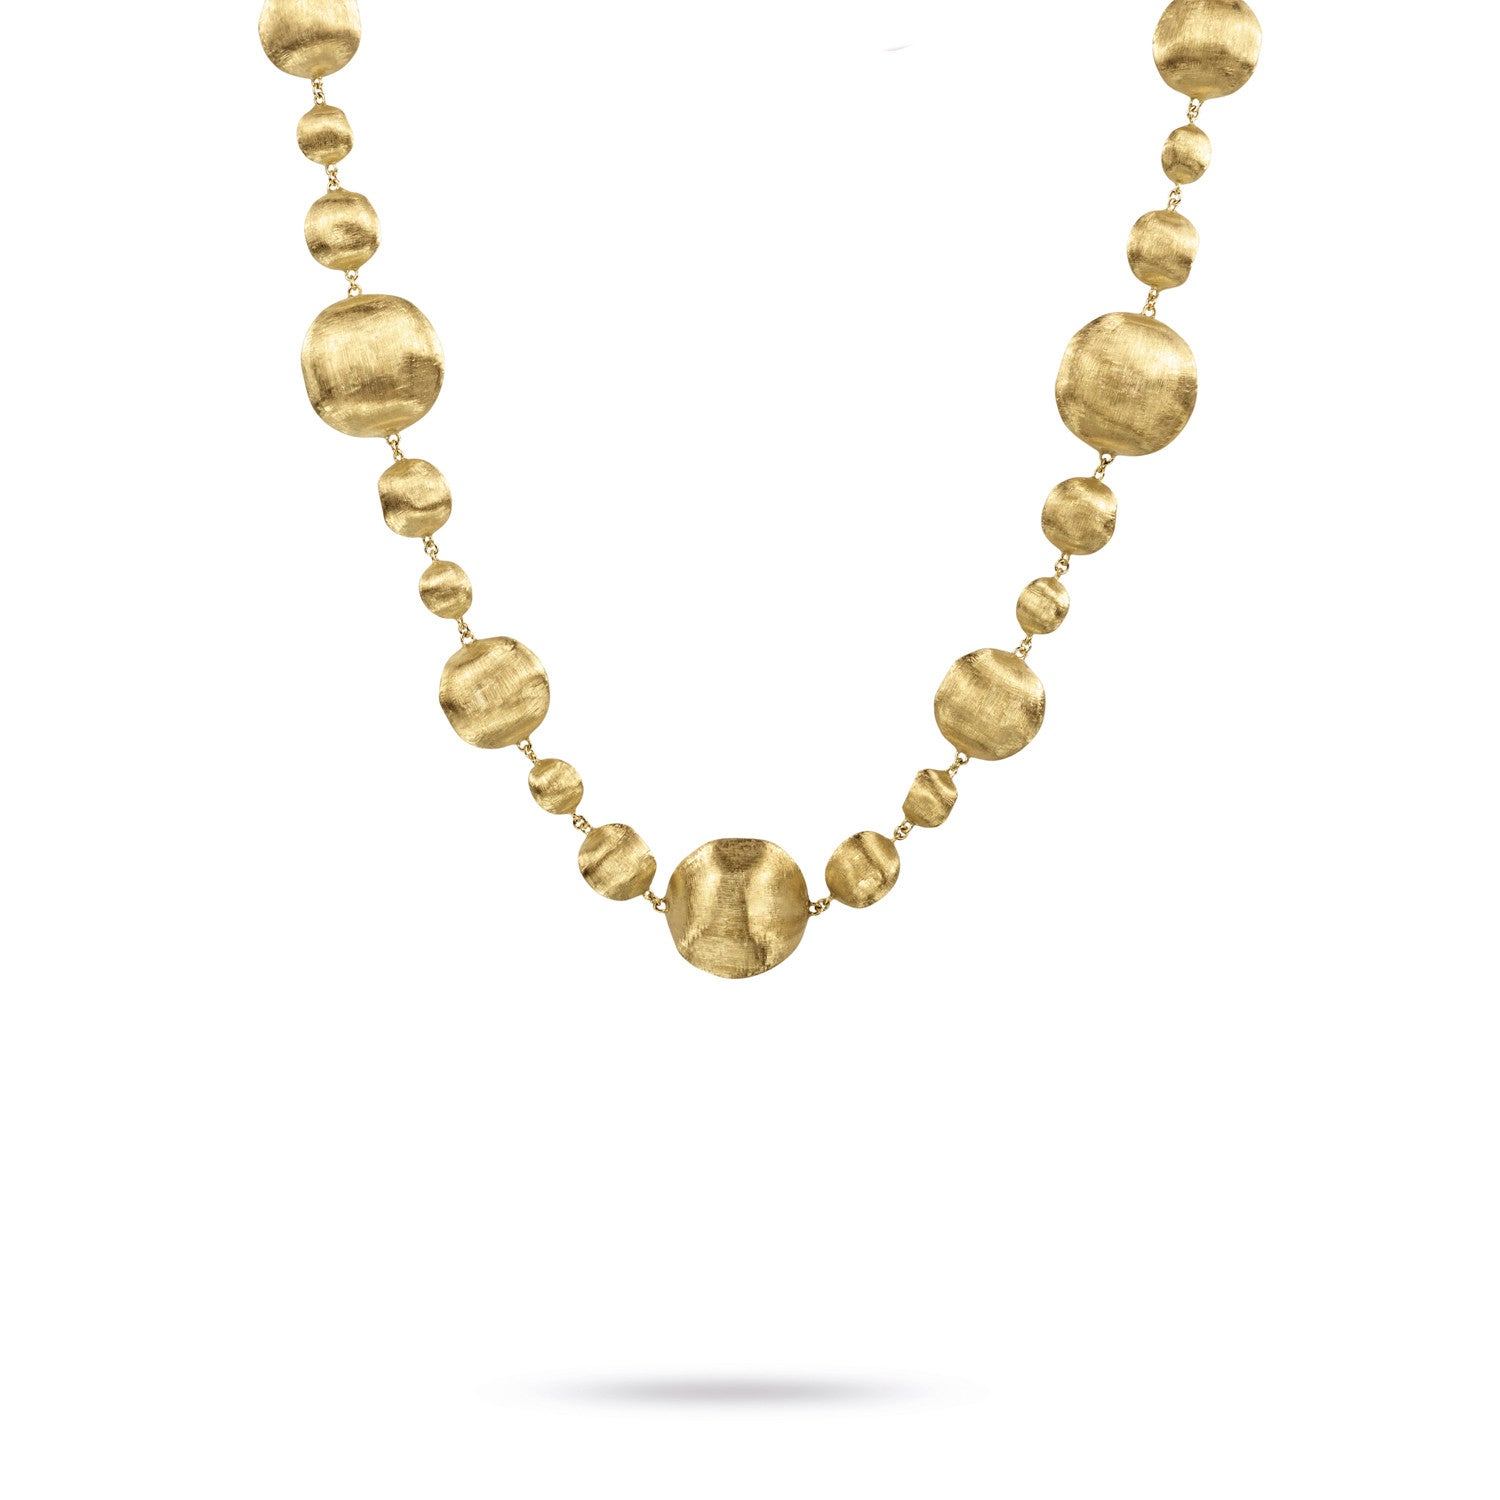 Africa Necklace in 18k Yellow Gold with Various Sized Balls - 44cm - Orsini Jewellers NZ